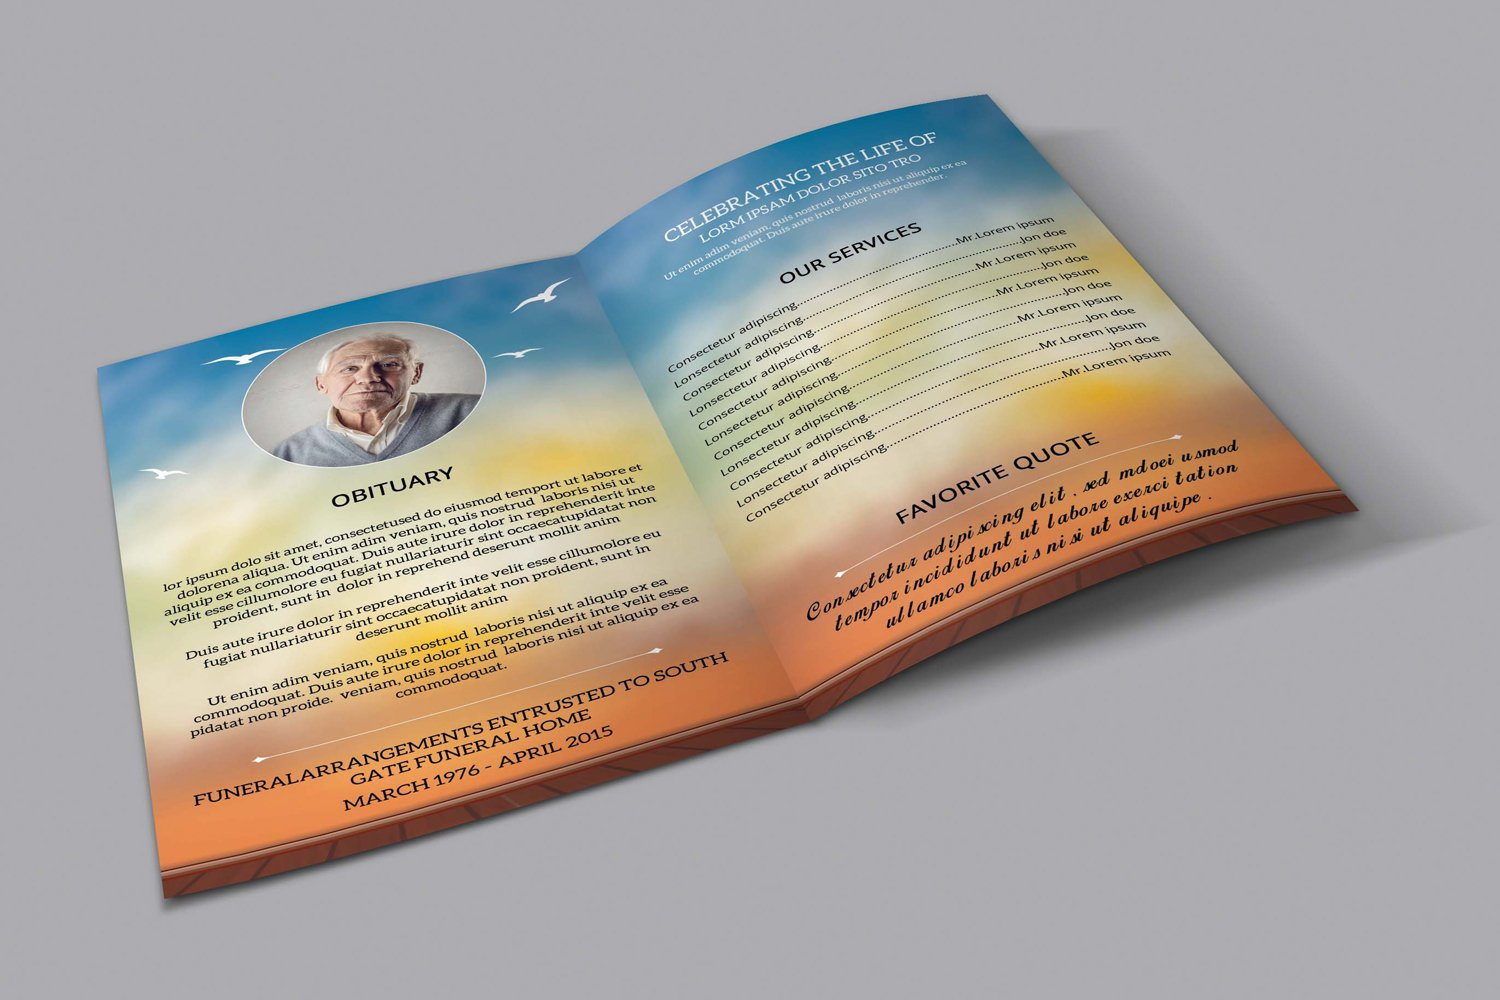 Funeral Program Template, Ms Word & Photoshop Template example image 4